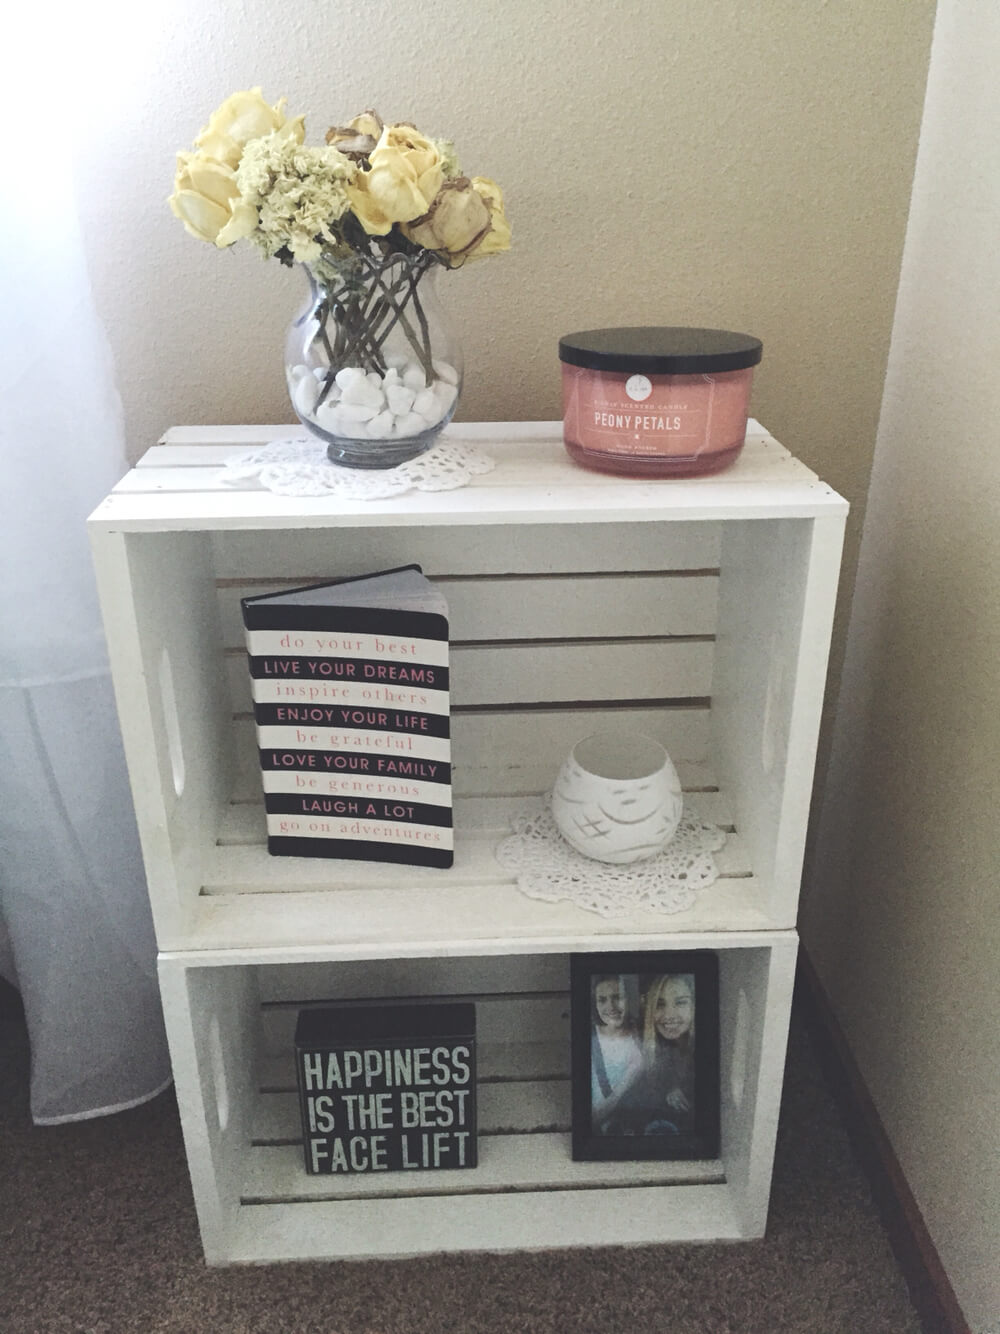 Boxy Two-shelf Crate With Slats